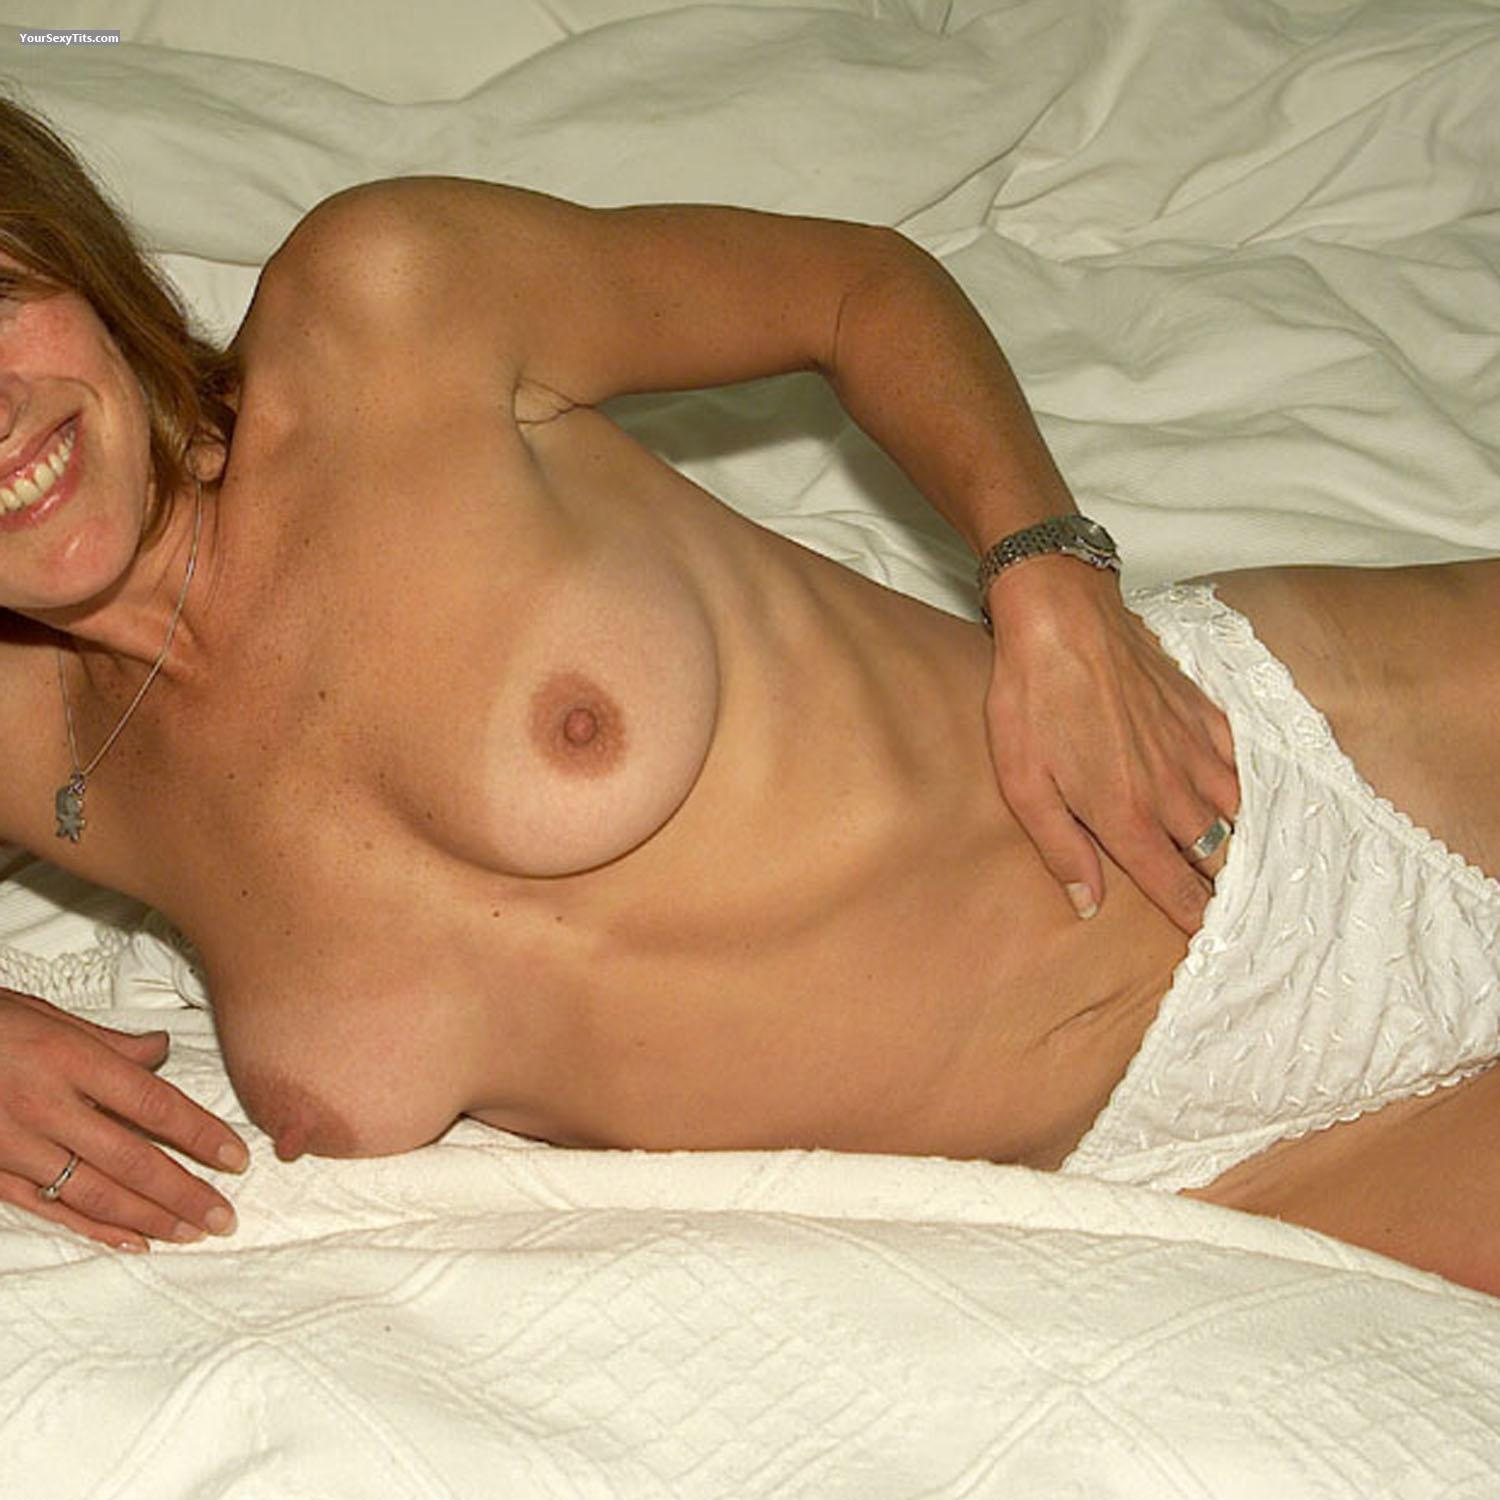 Tit Flash: Tanlined Medium Tits - Girl Next Door from United Kingdom